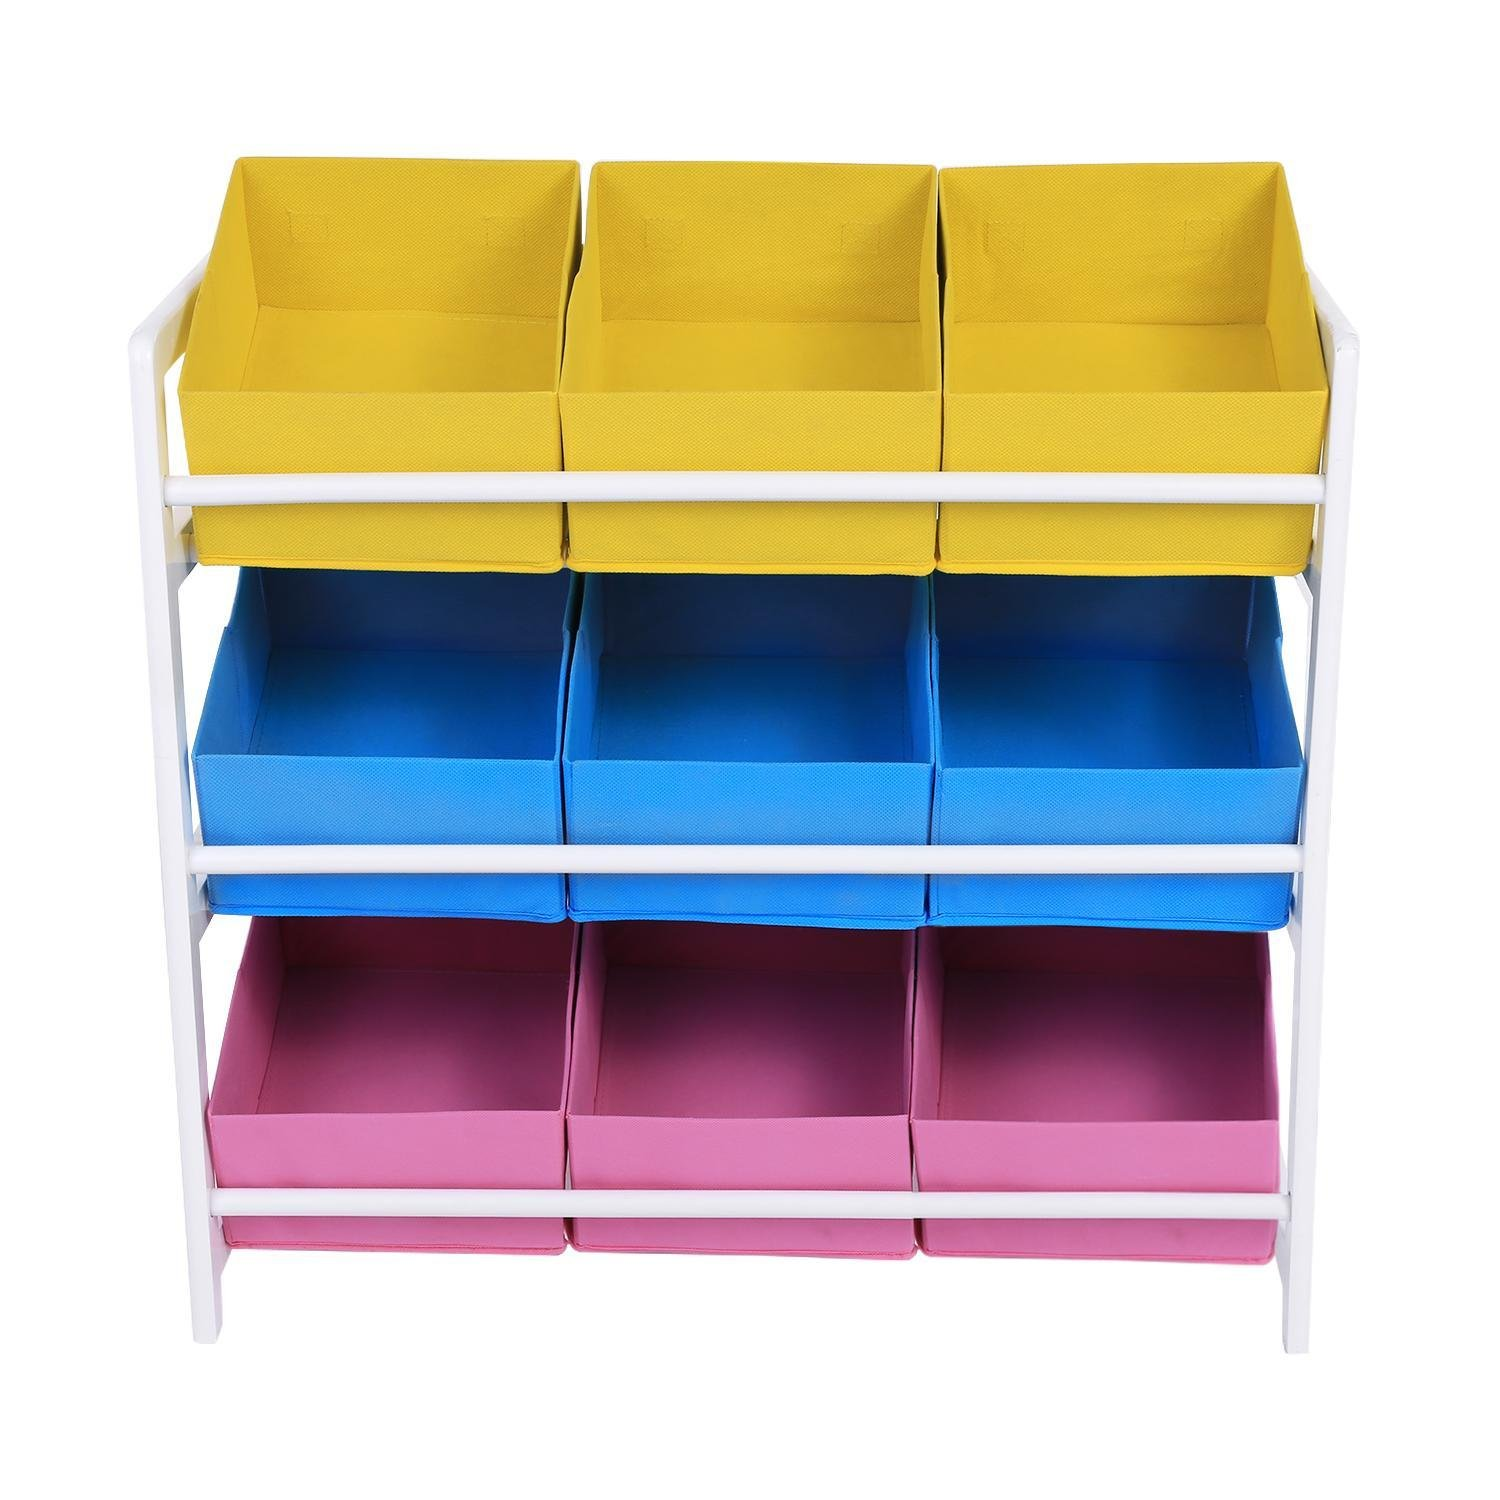 Children 3 Tier Toy Organizer with 9 Non-woven Fabric Storage Bins, Mobile Cart Bins for Home Kids Room (Multi-Color)